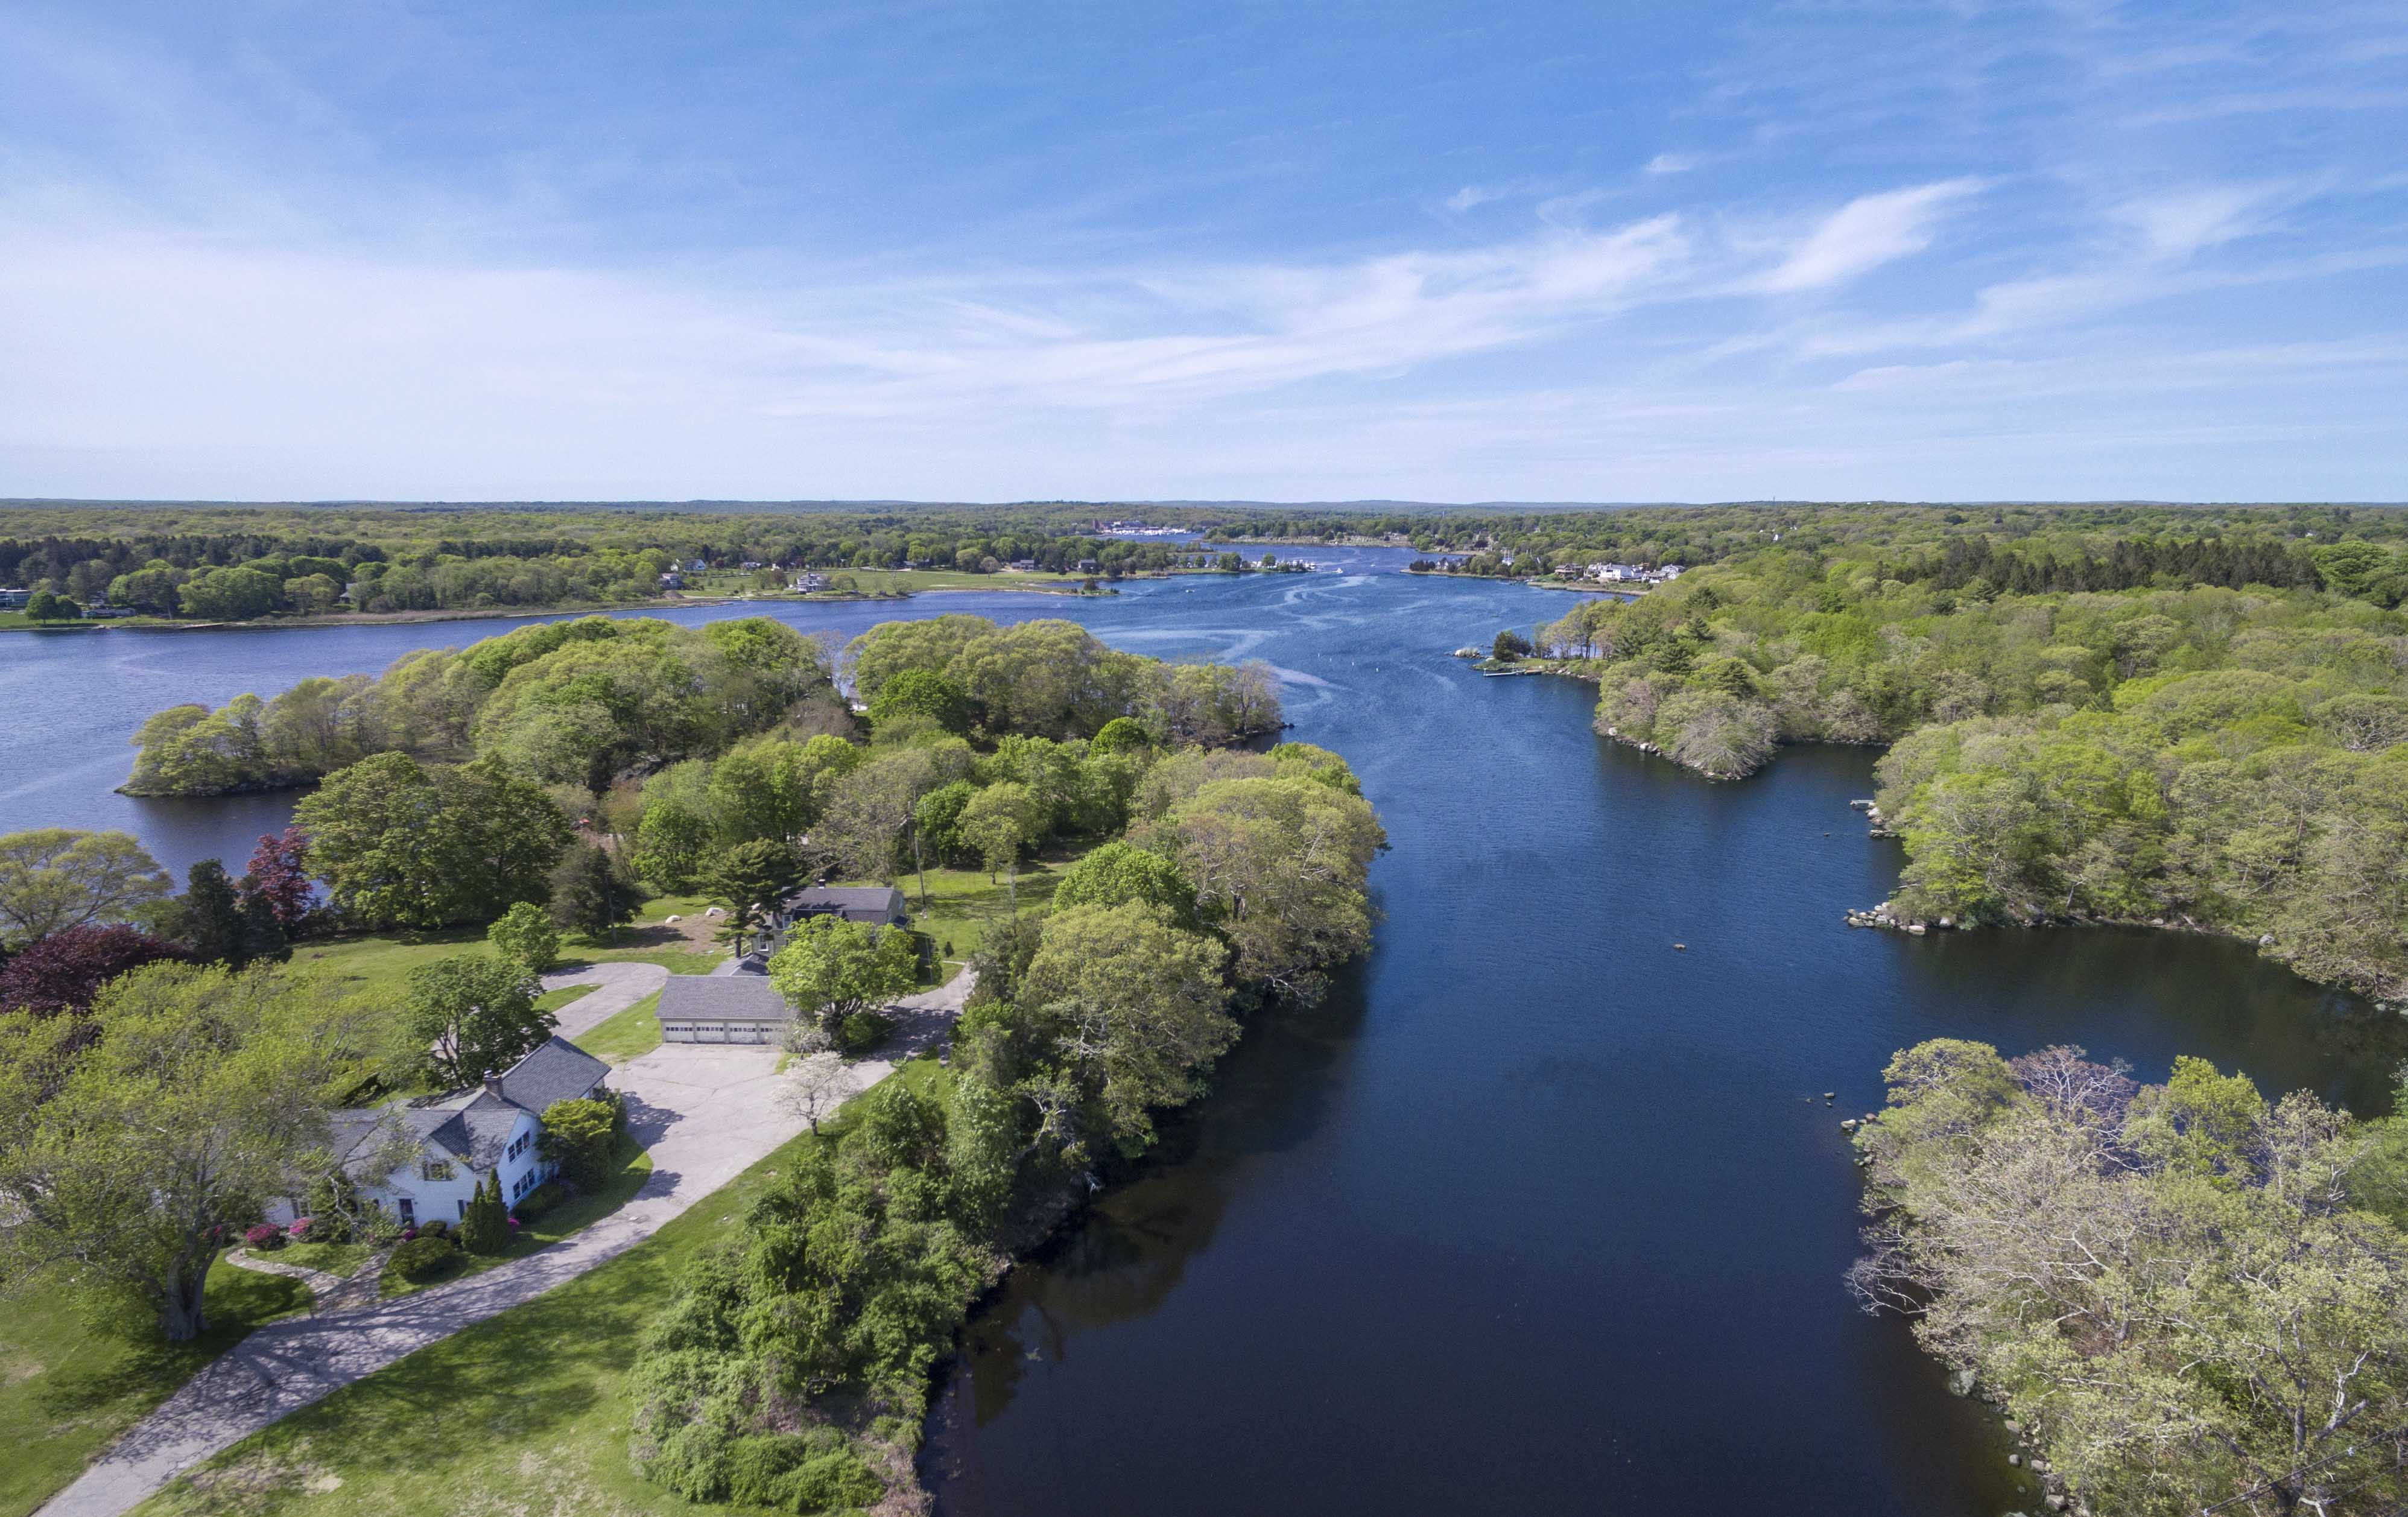 WATERFRONT MULTI-FAMILY COMPOUND IN WESTERLY SELLS FOR $2.5M WITH LILA DELMAN REAL ESTATE ON BOTH SIDES OF THE TRANSACTION